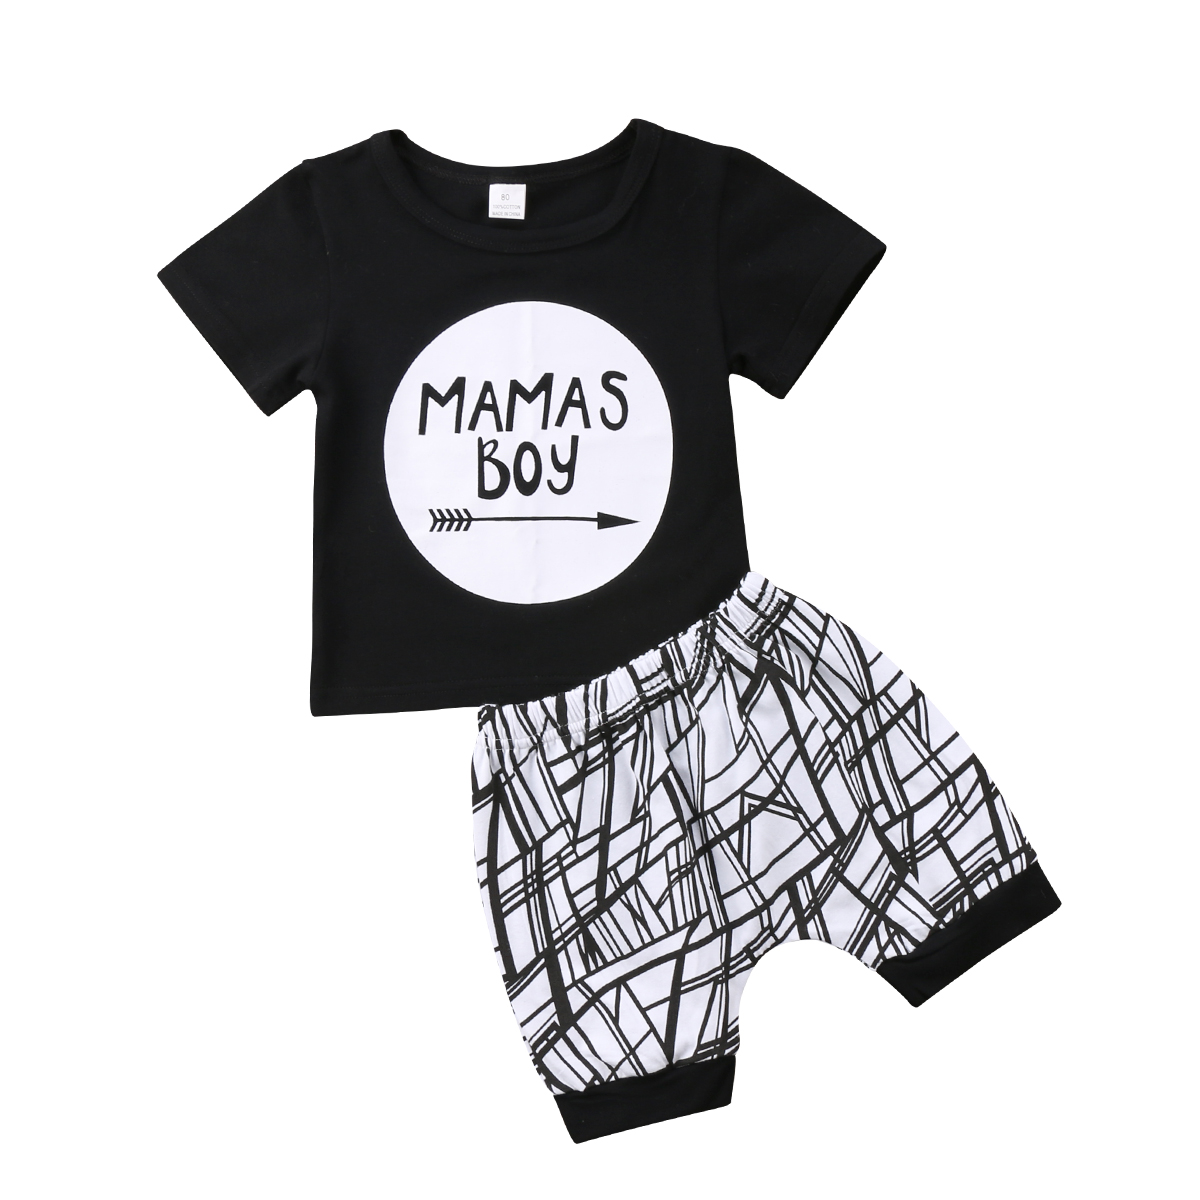 0-24M New Born <font><b>Baby</b></font> Clothes 2pcs <font><b>Set</b></font> Black Letter Print <font><b>Tshirt</b></font> For Boys White Stripe Pants Legging <font><b>Baby</b></font> Boys Clothes Newborn <font><b>Set</b></font> image